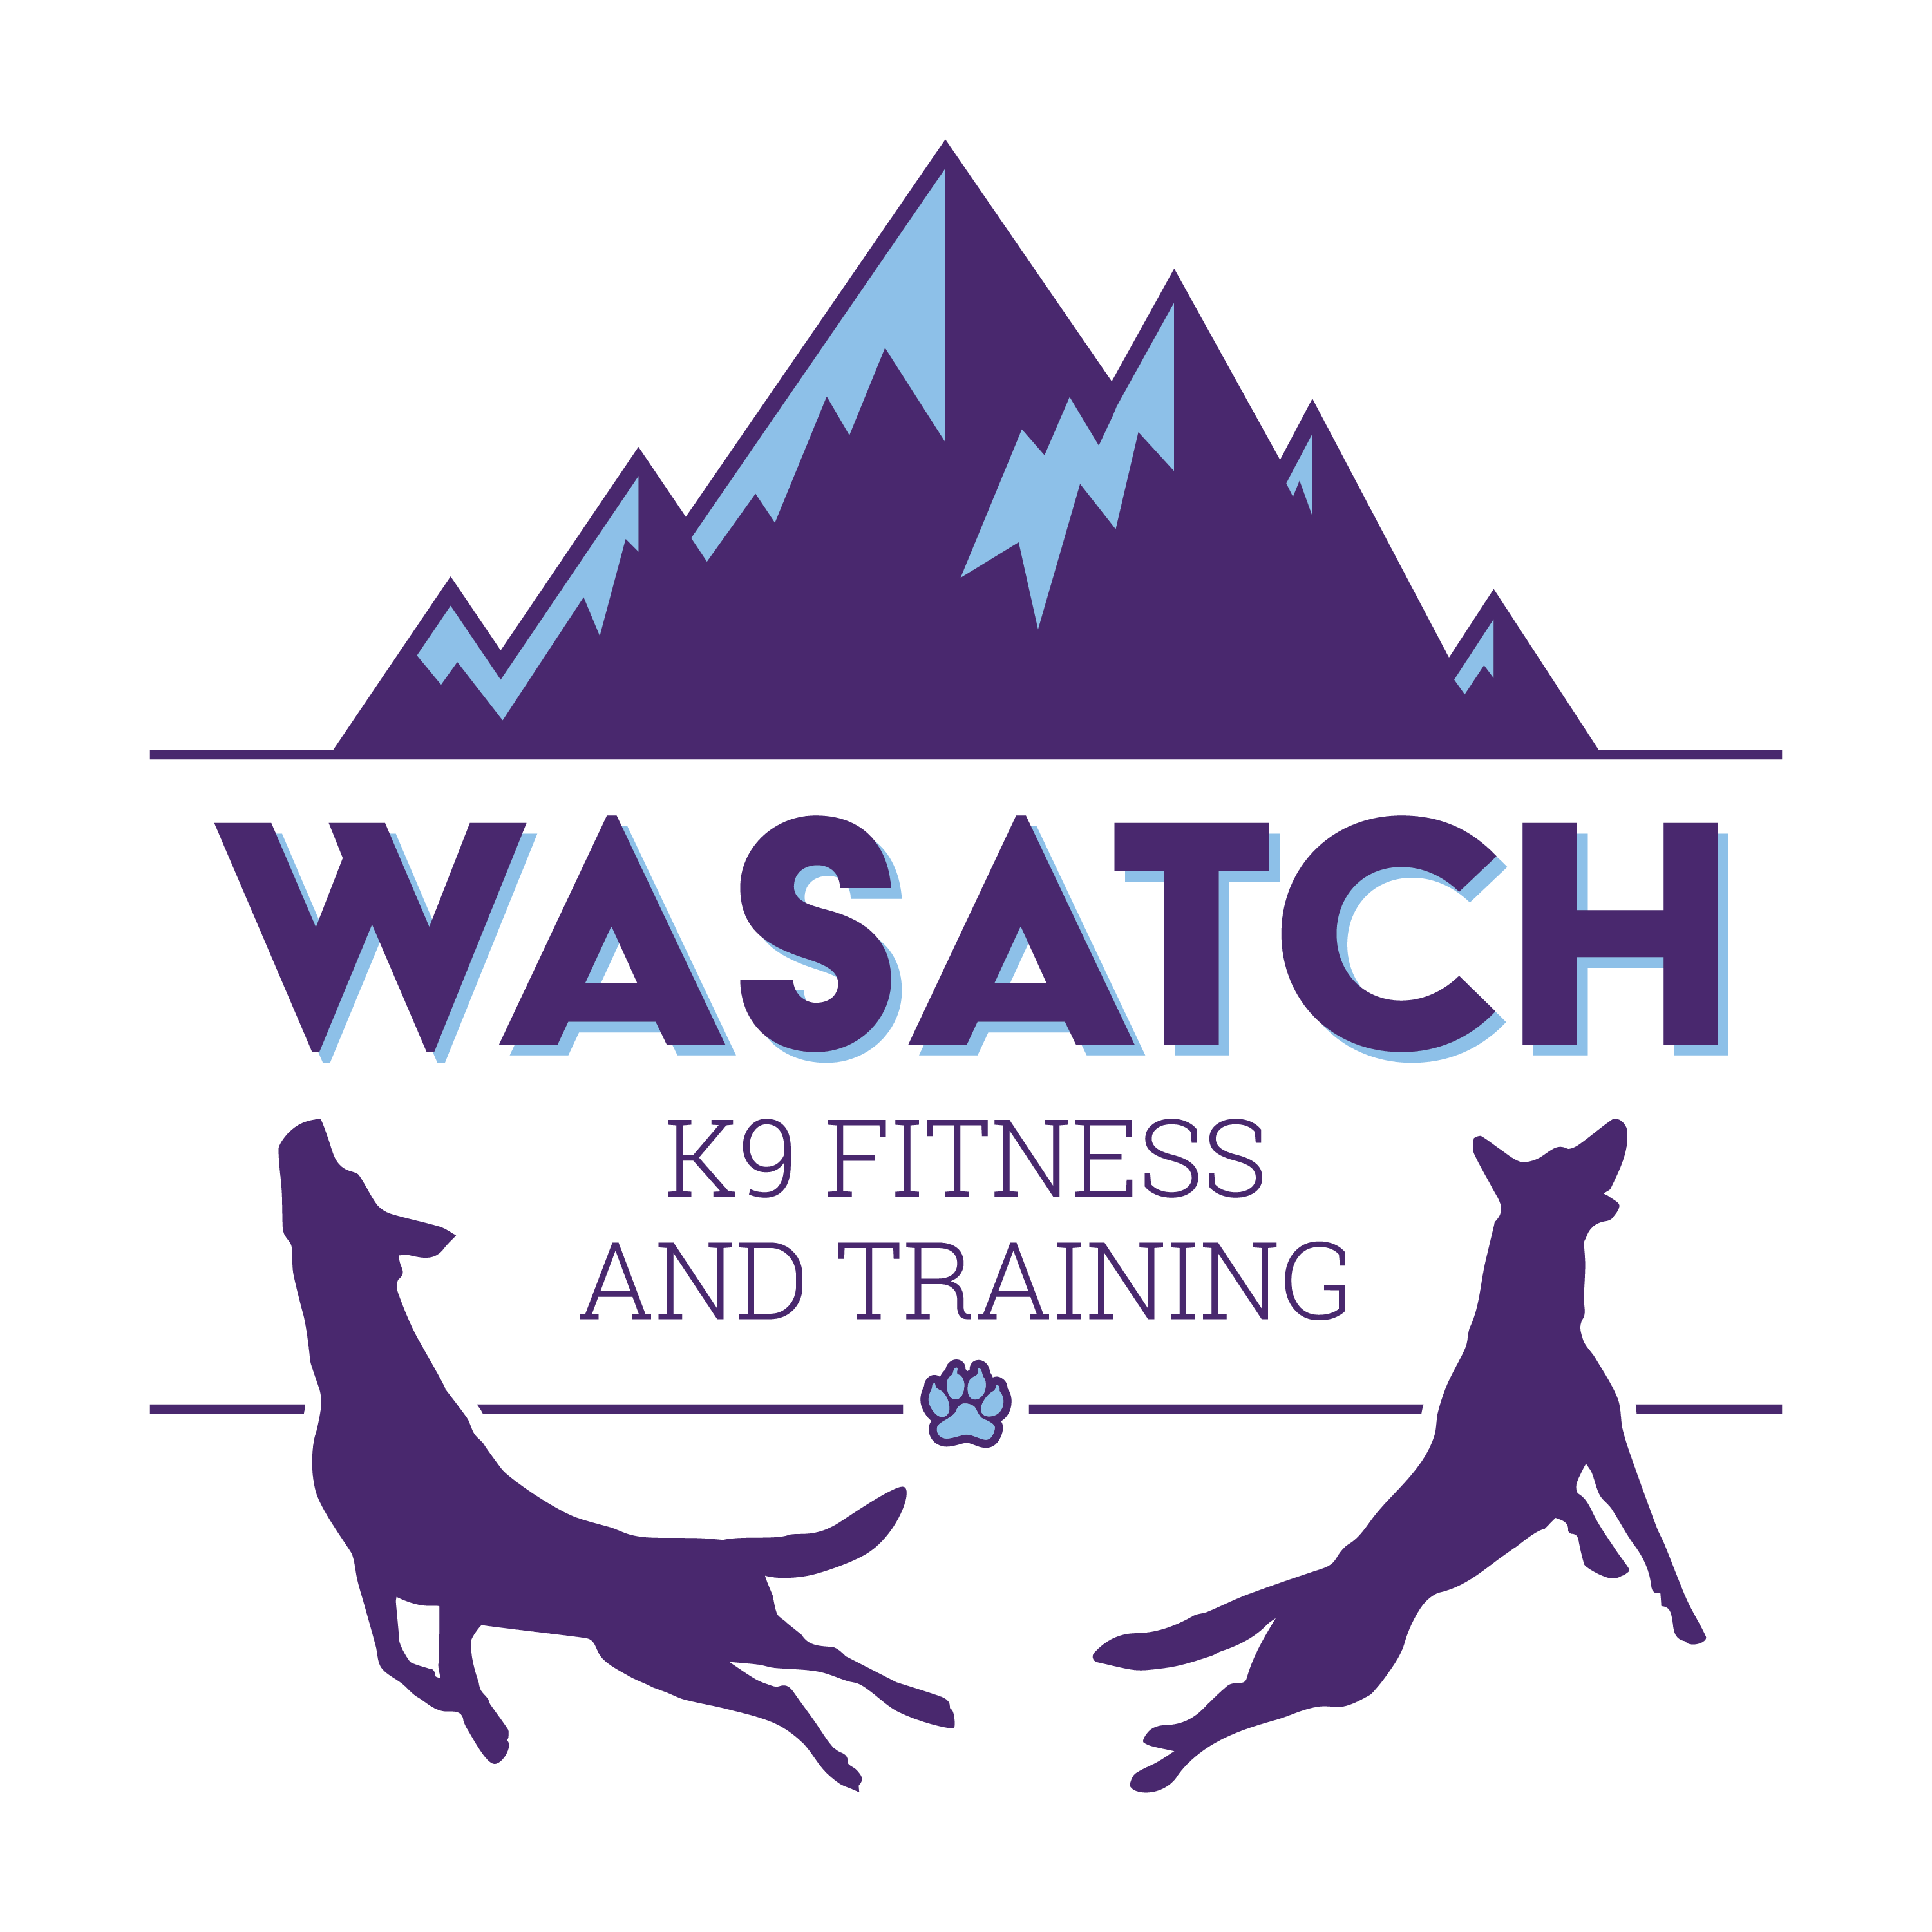 Wasatch K9 Fitness and Training